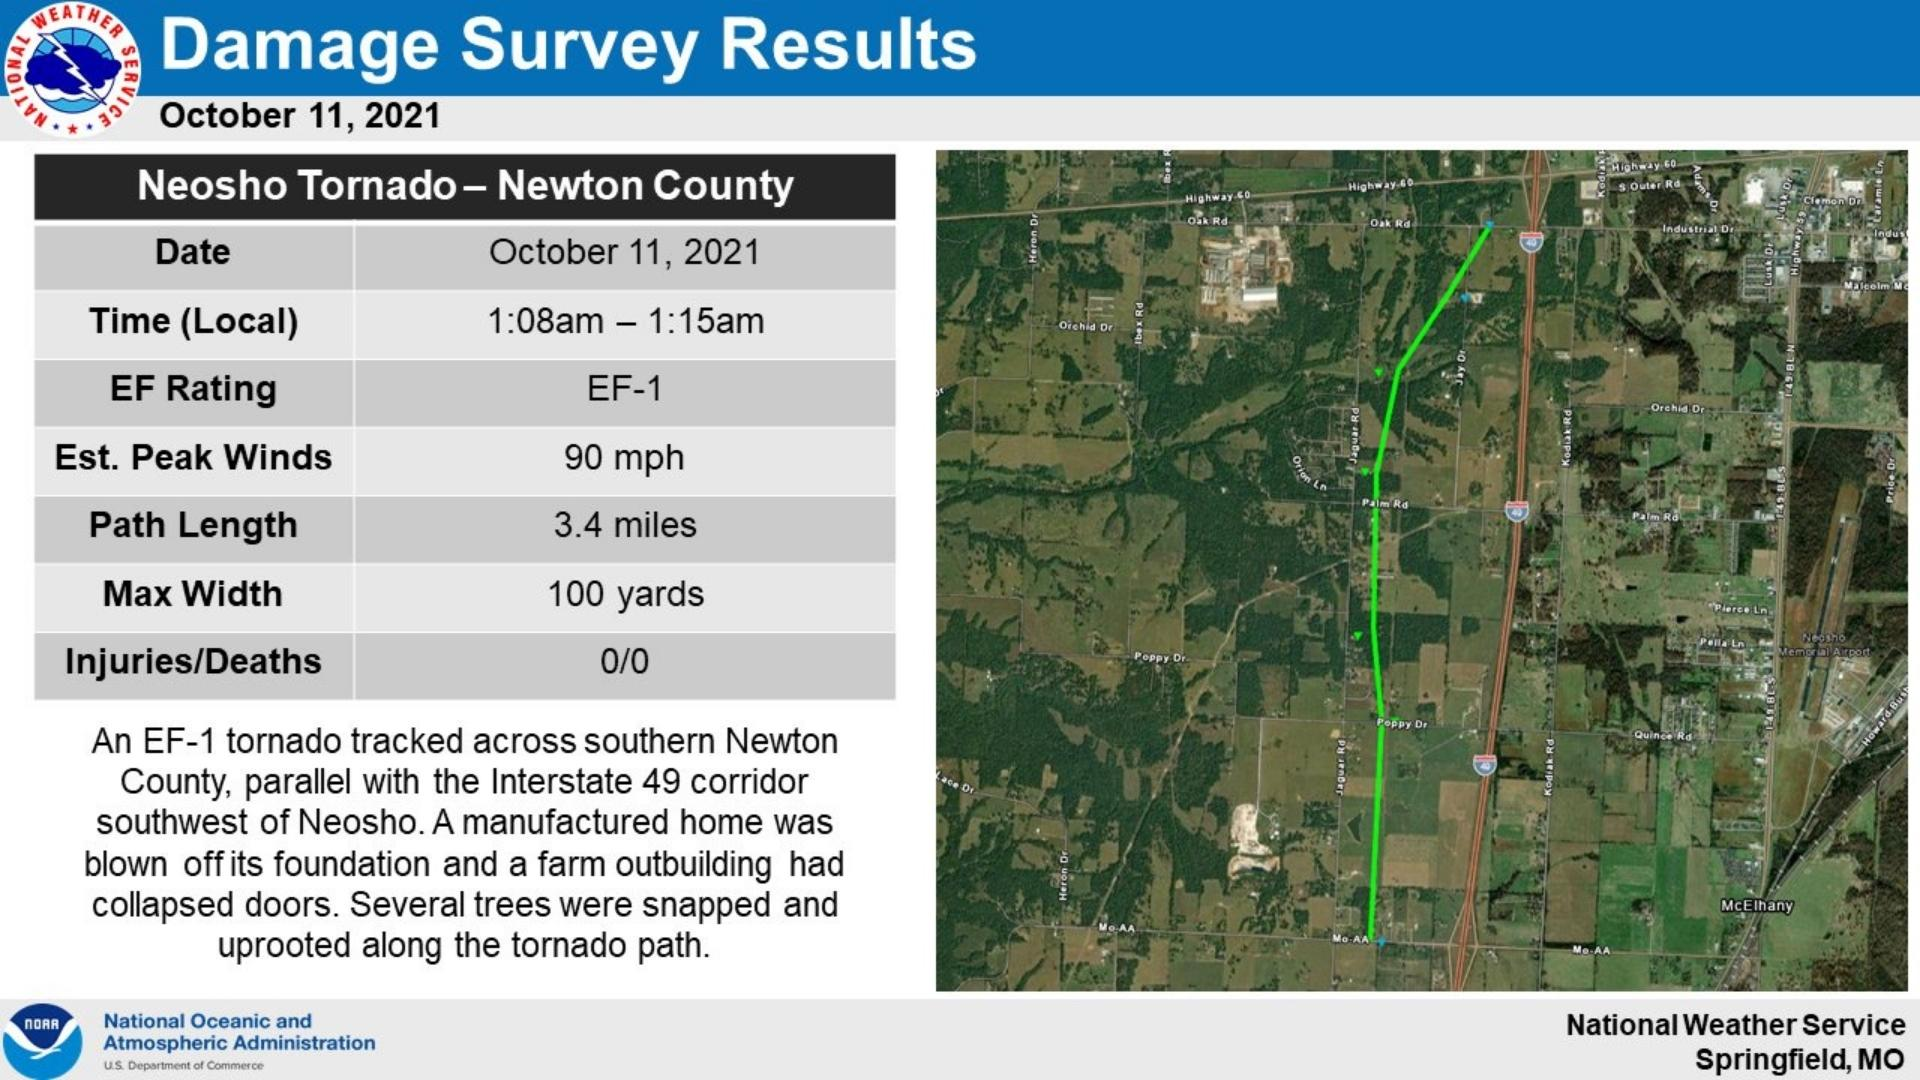 Survey Results For Ef 0 Tornado In Newton County Missouri Oct 11 2021